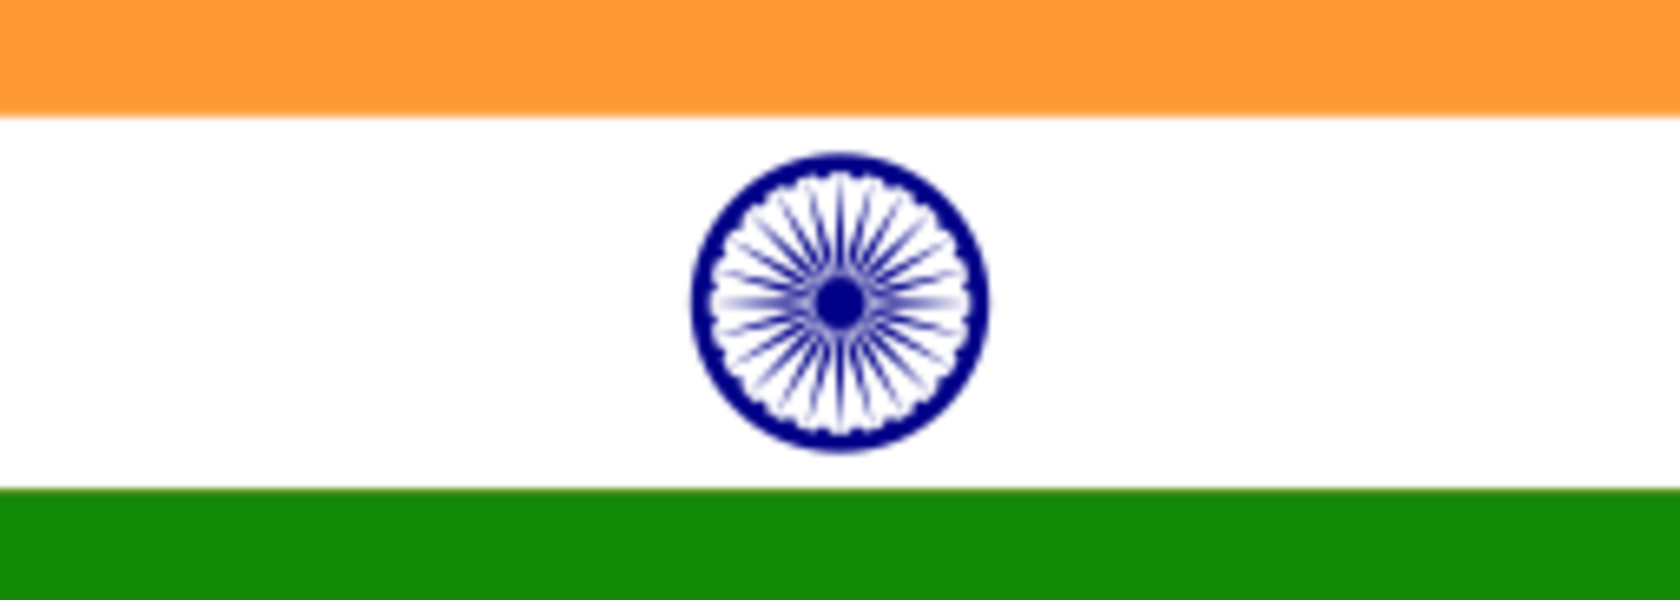 Austrade seeks LNG companies to invest in India